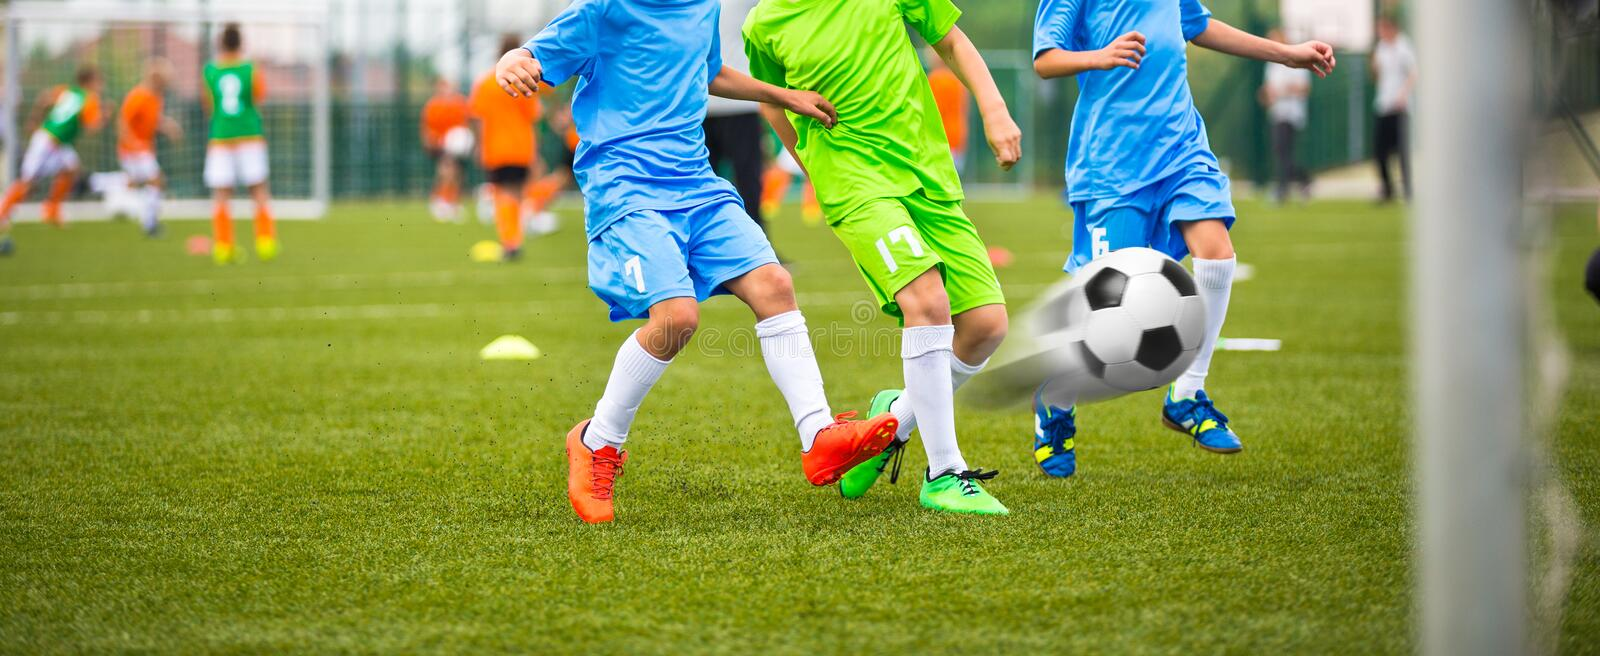 Kids playing football together; Children playing soccer football game outdoor stock image